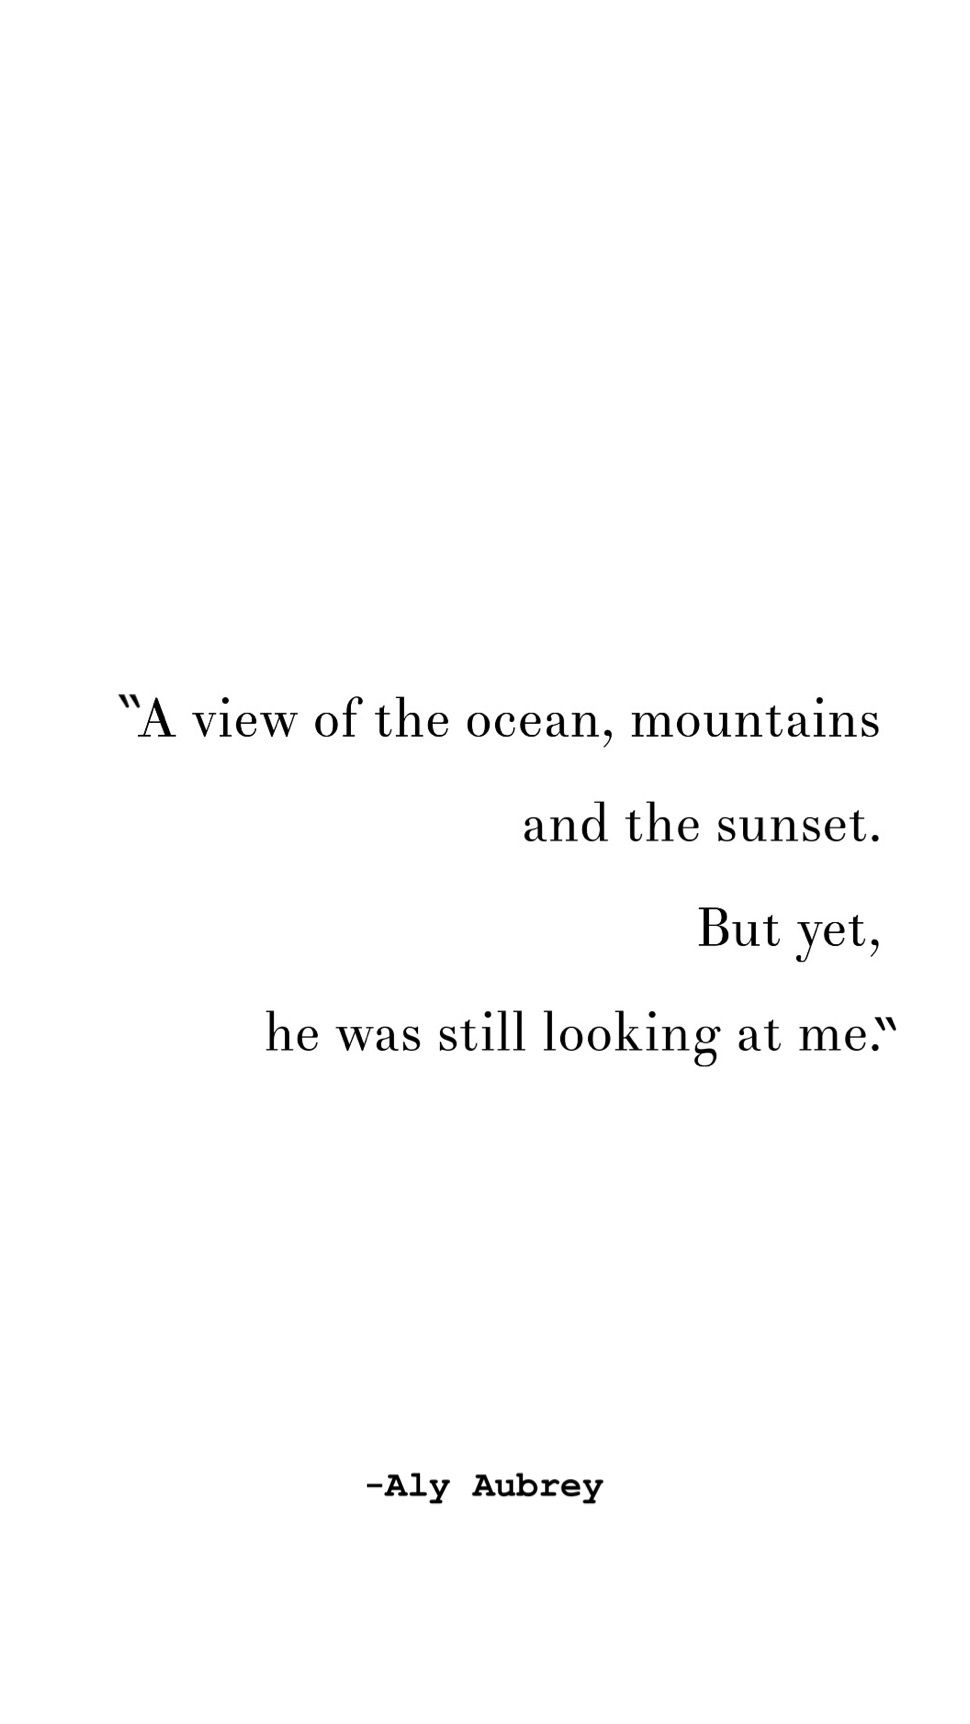 A view of the ocean, mountains and sunset. But yet, he was still looking at me Quote | being in love Quote | he loves me Quote | healthy relationship Quotes| the way he looks at me Quotes